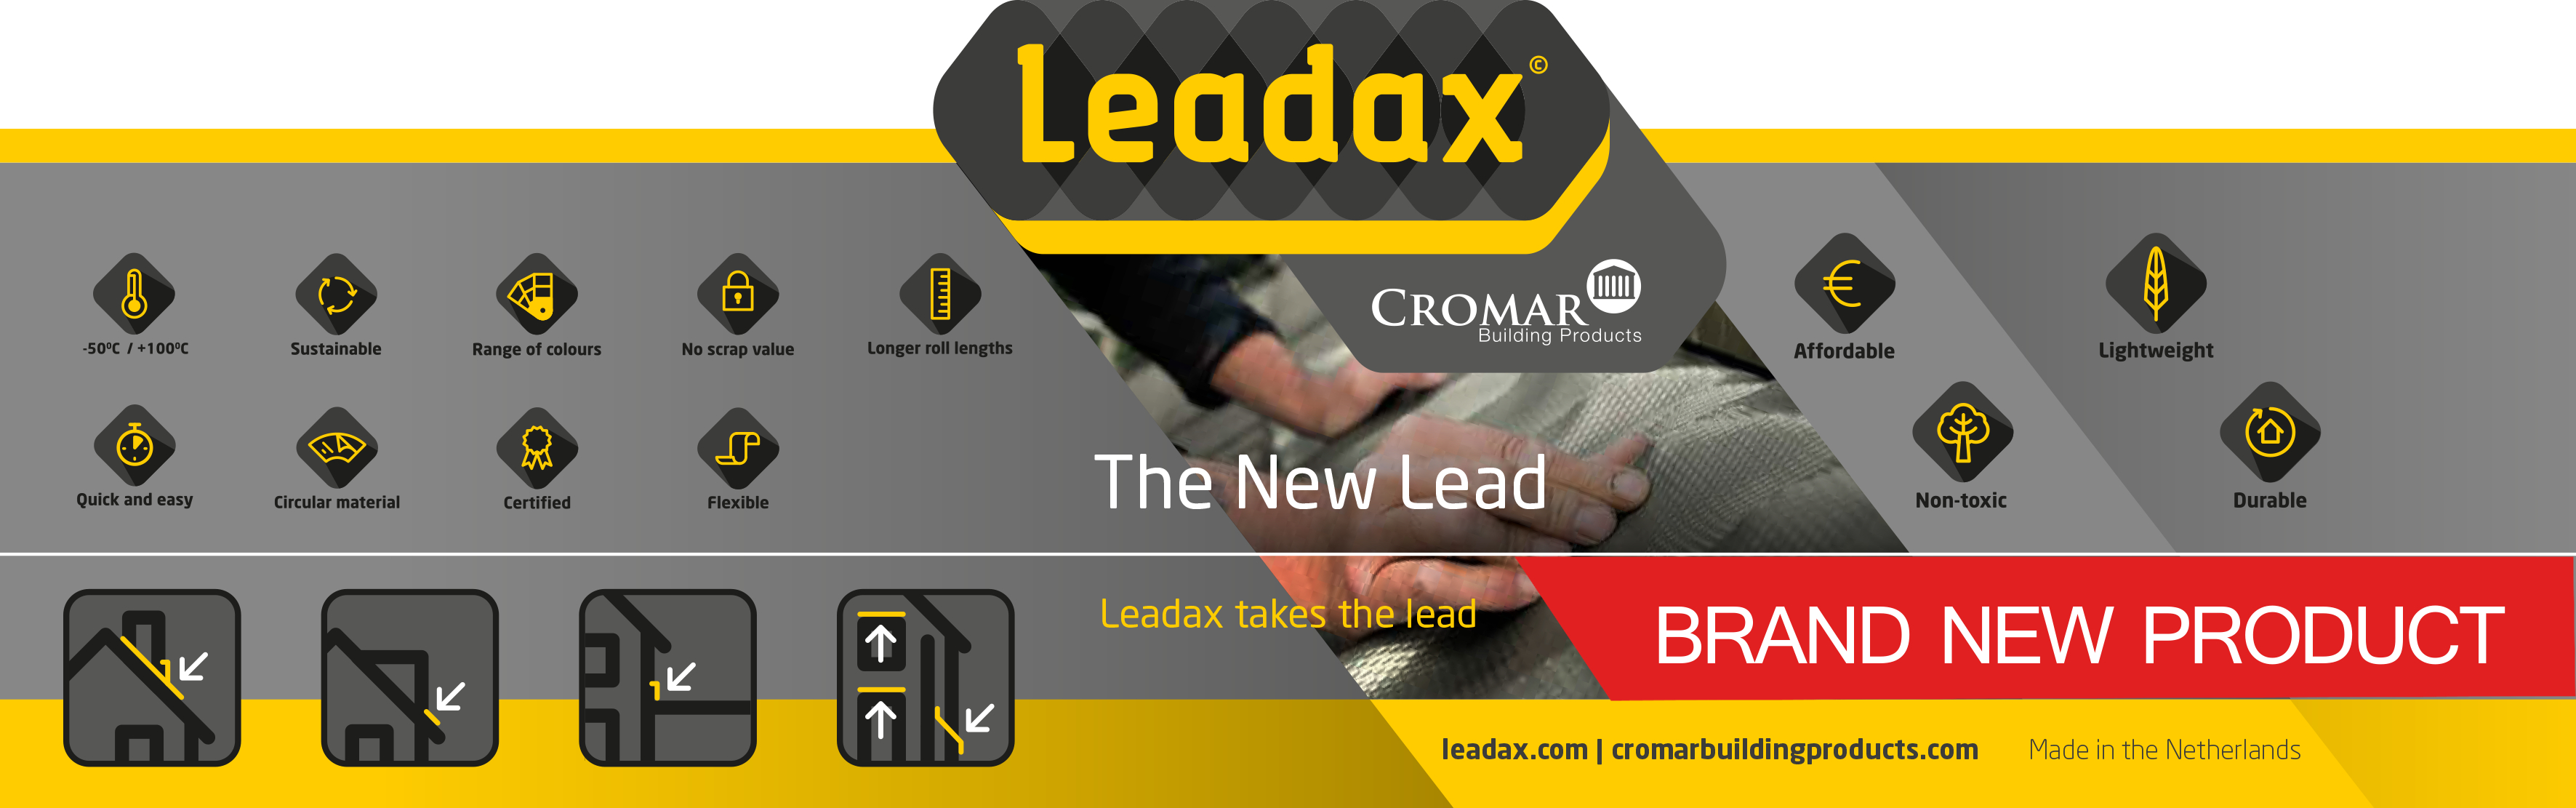 LEAD17020-Sticker-EN-Cromar-300x100-v2_2